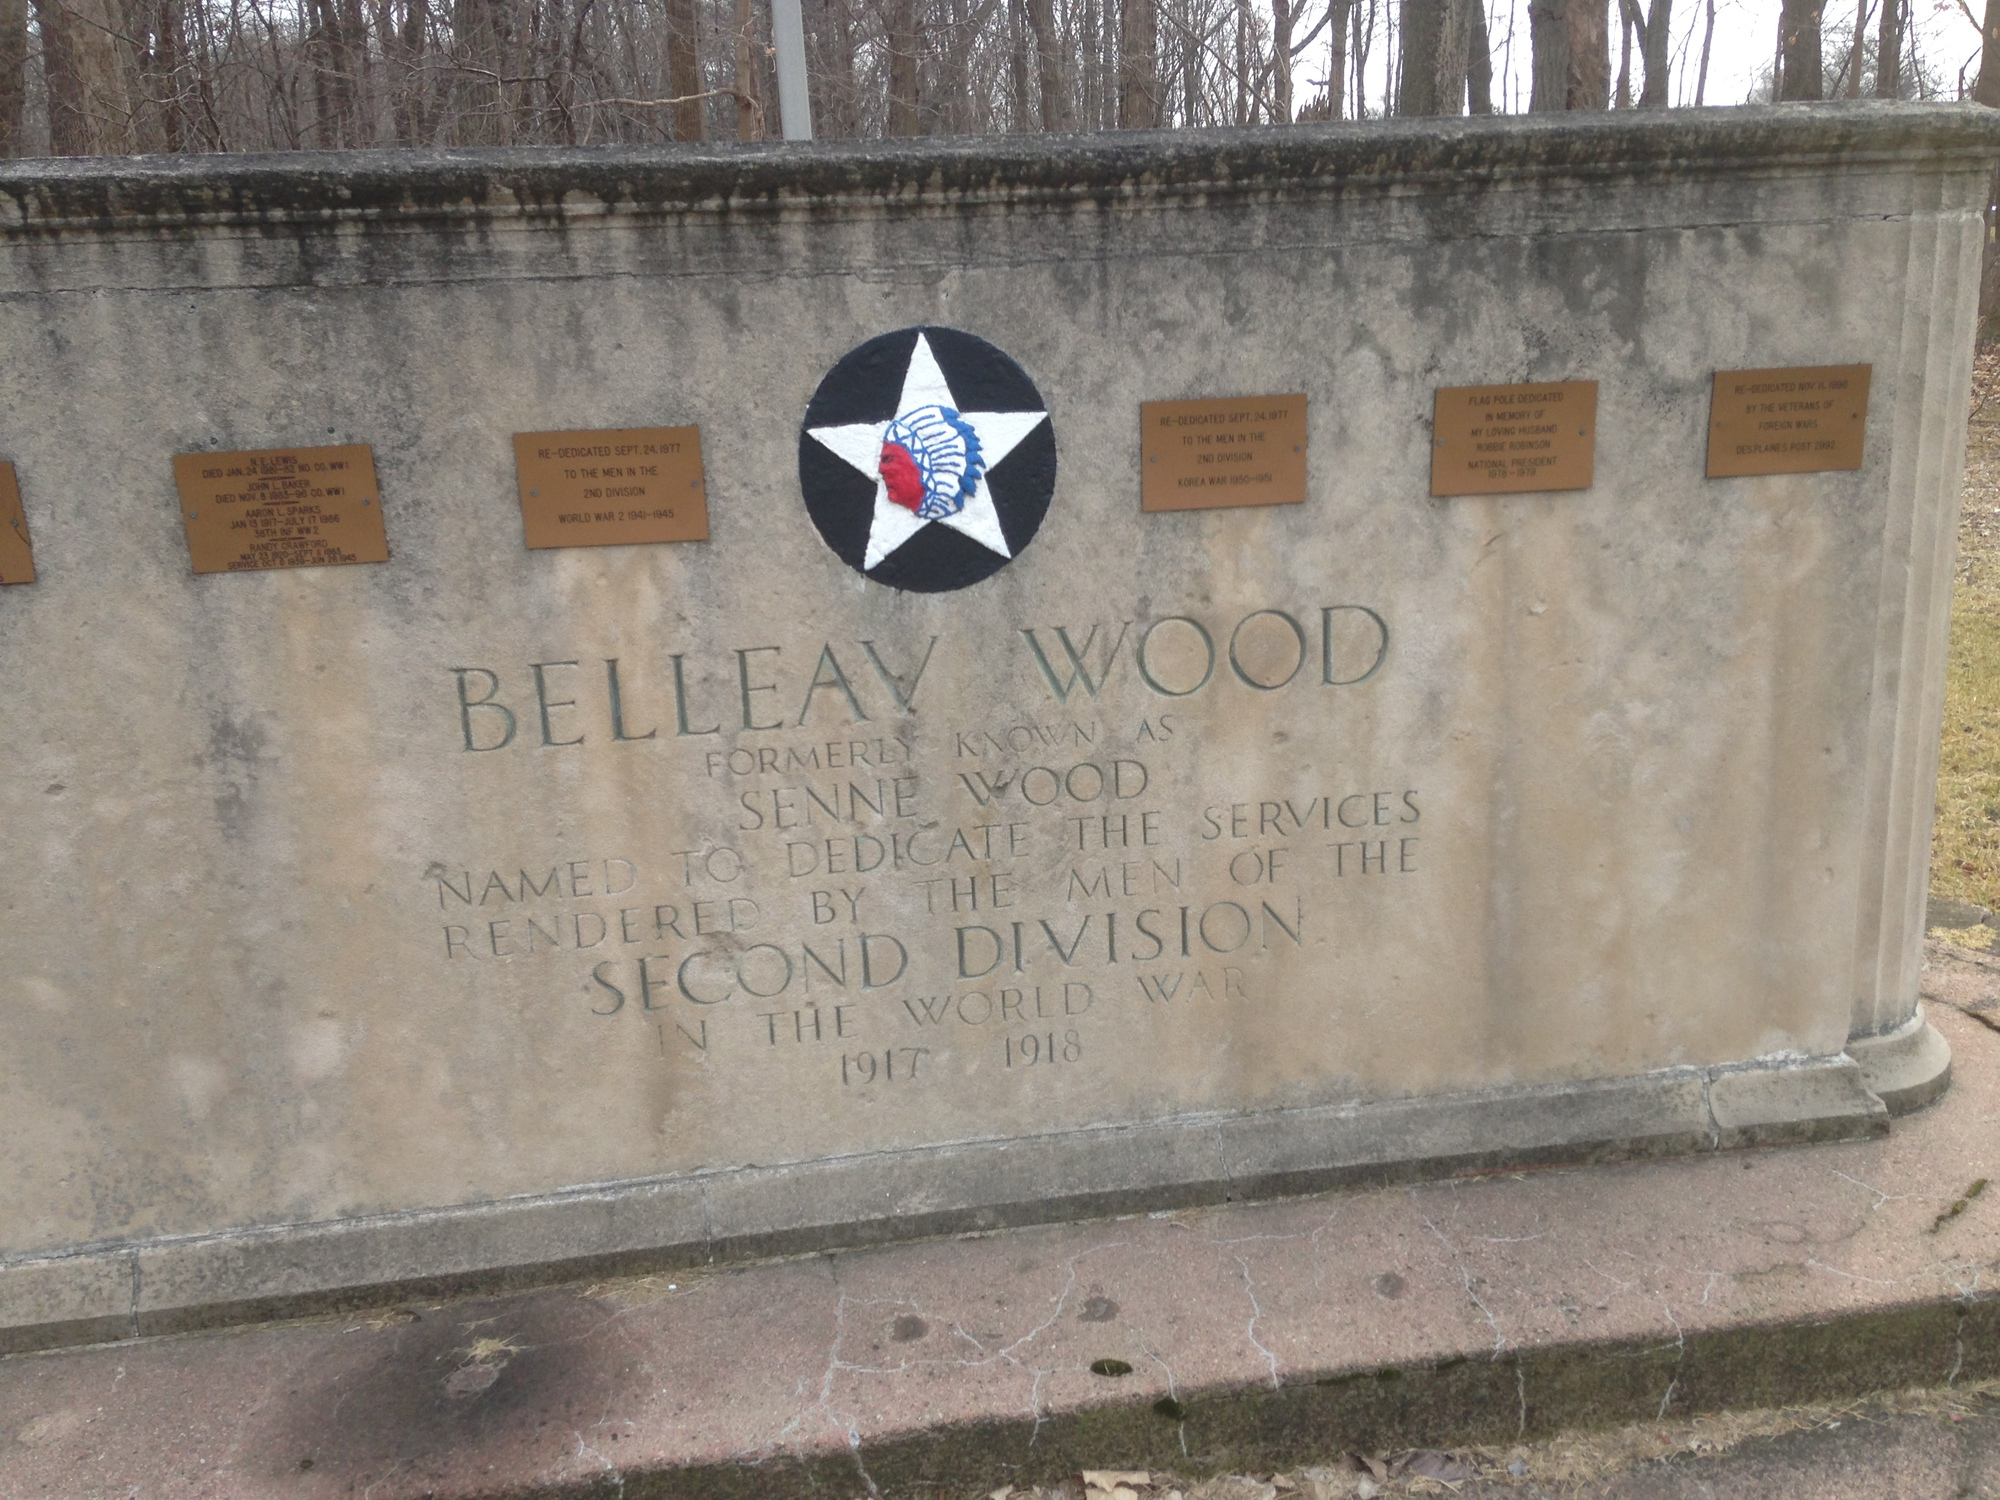 Belleau Wood Second Division Memorial (IL)